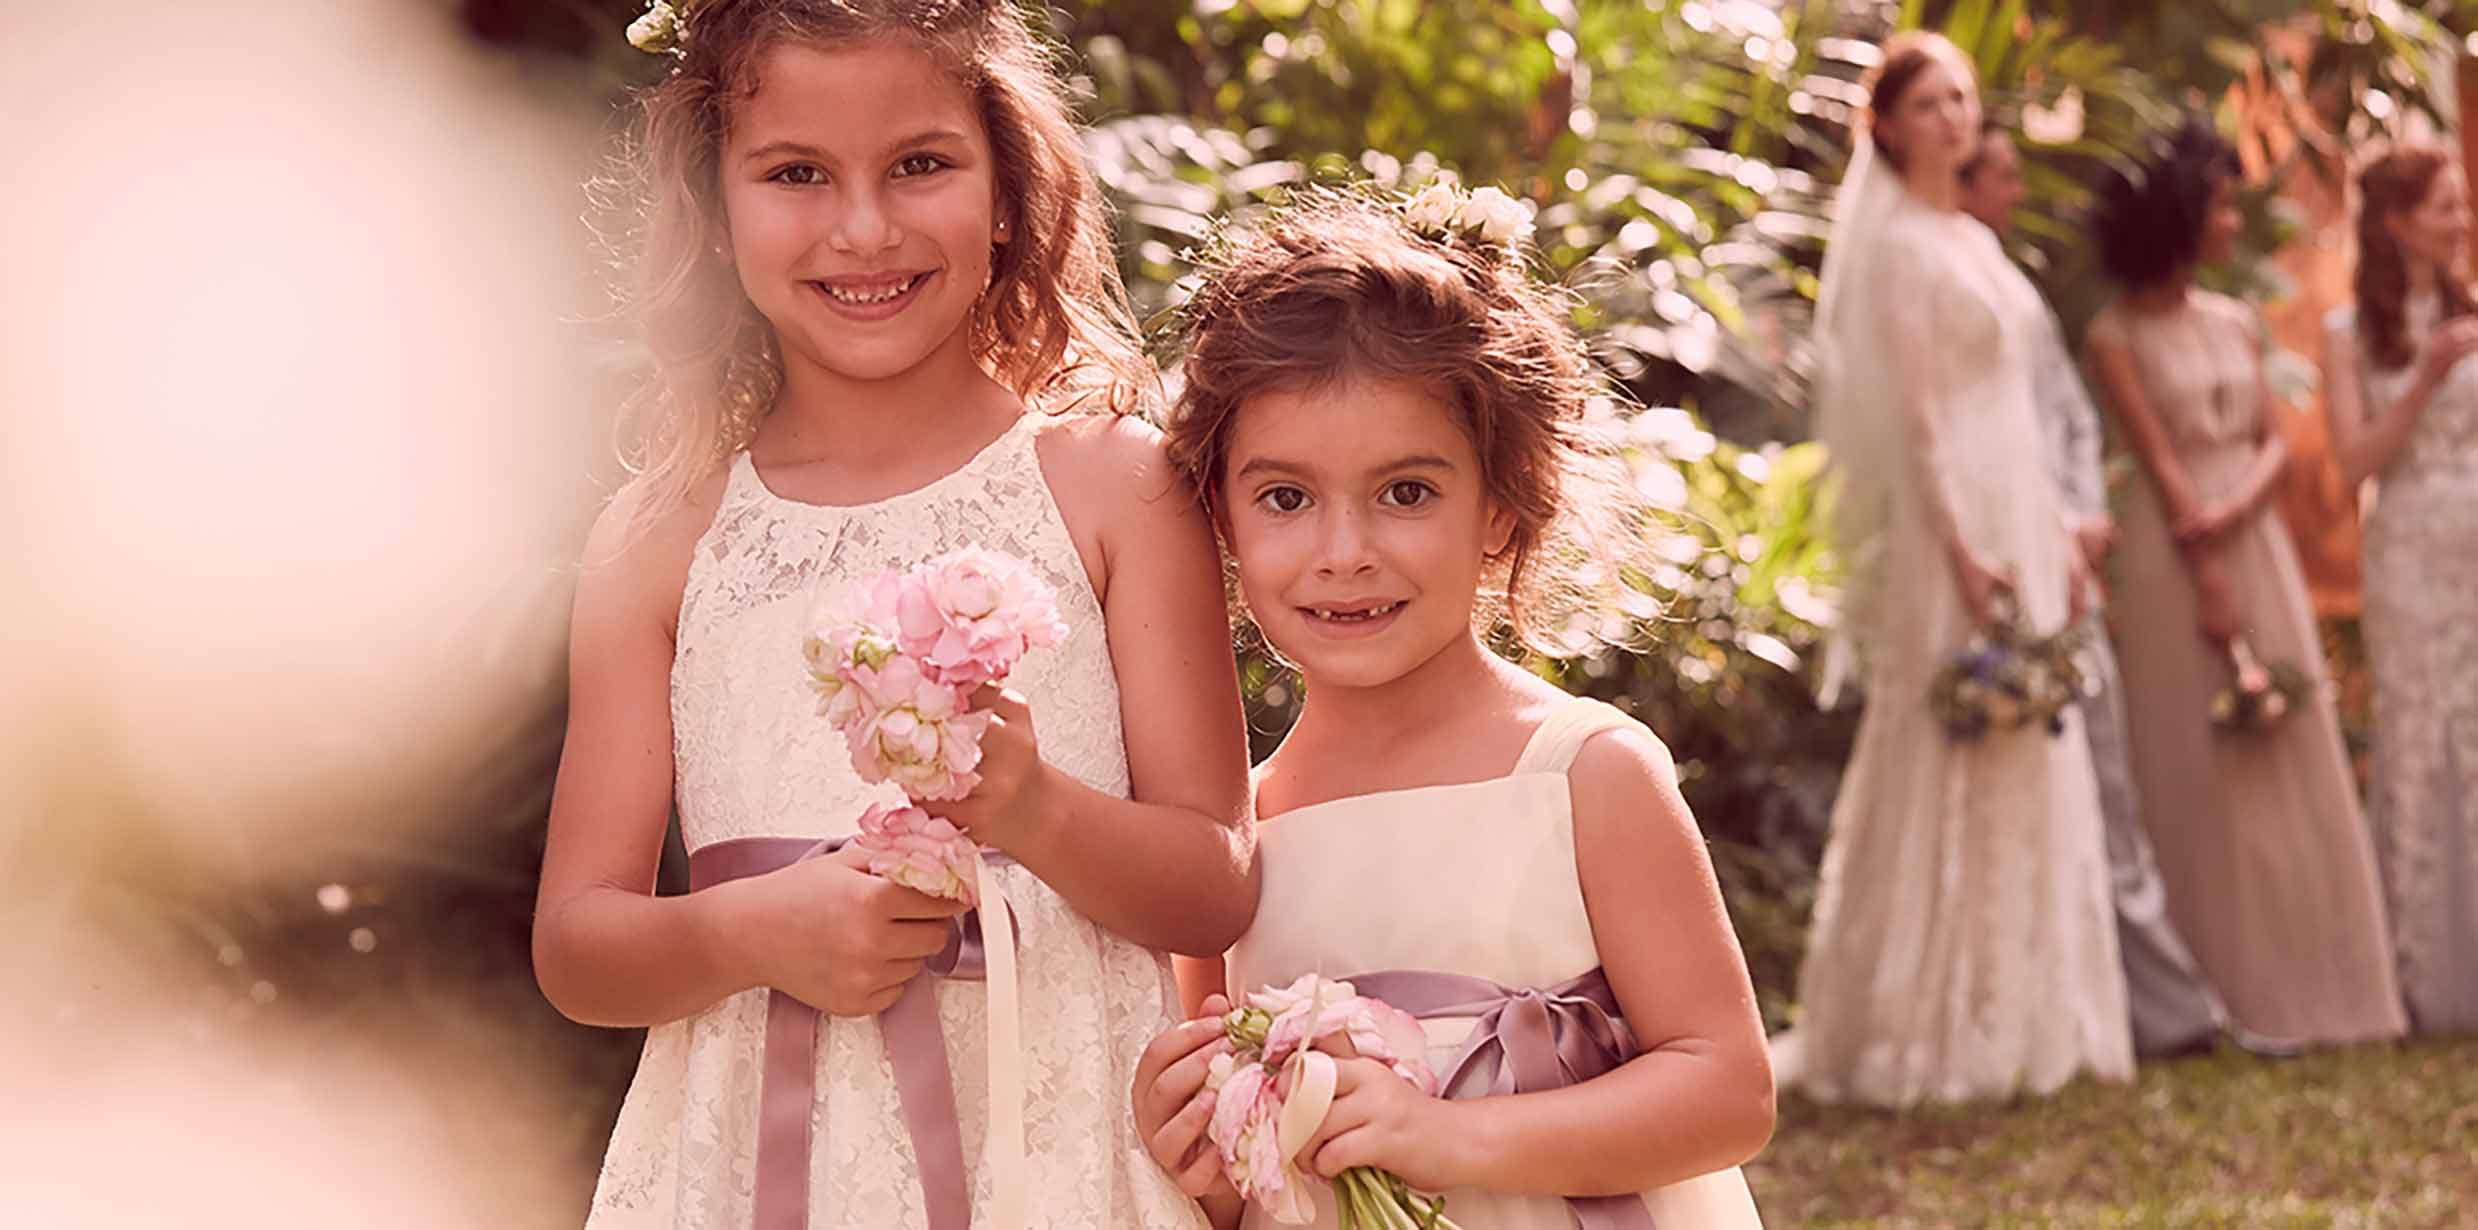 How to choose a flower girl dress davids bridal flower girls smiling down aisle ombrellifo Gallery